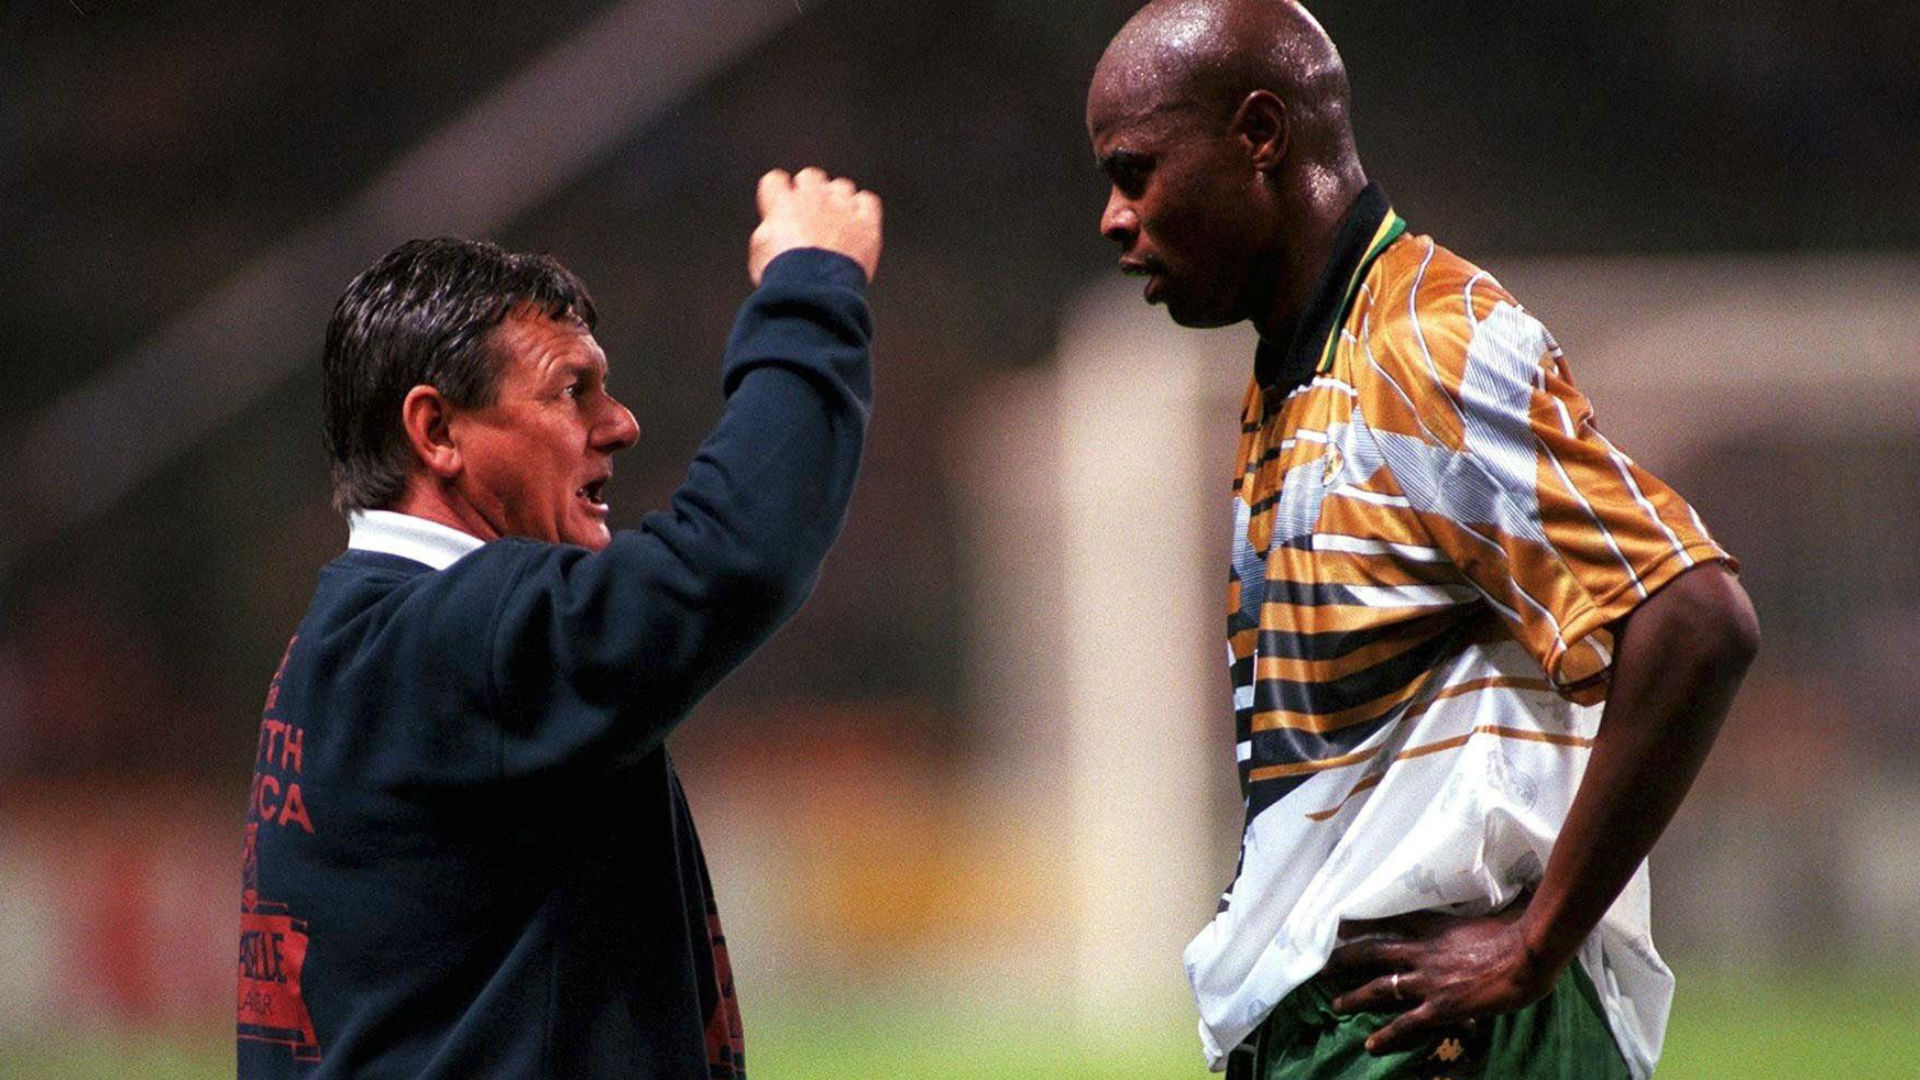 EFF mourns the passing of Bafana Bafana legend Phil 'Chippa' Masinga